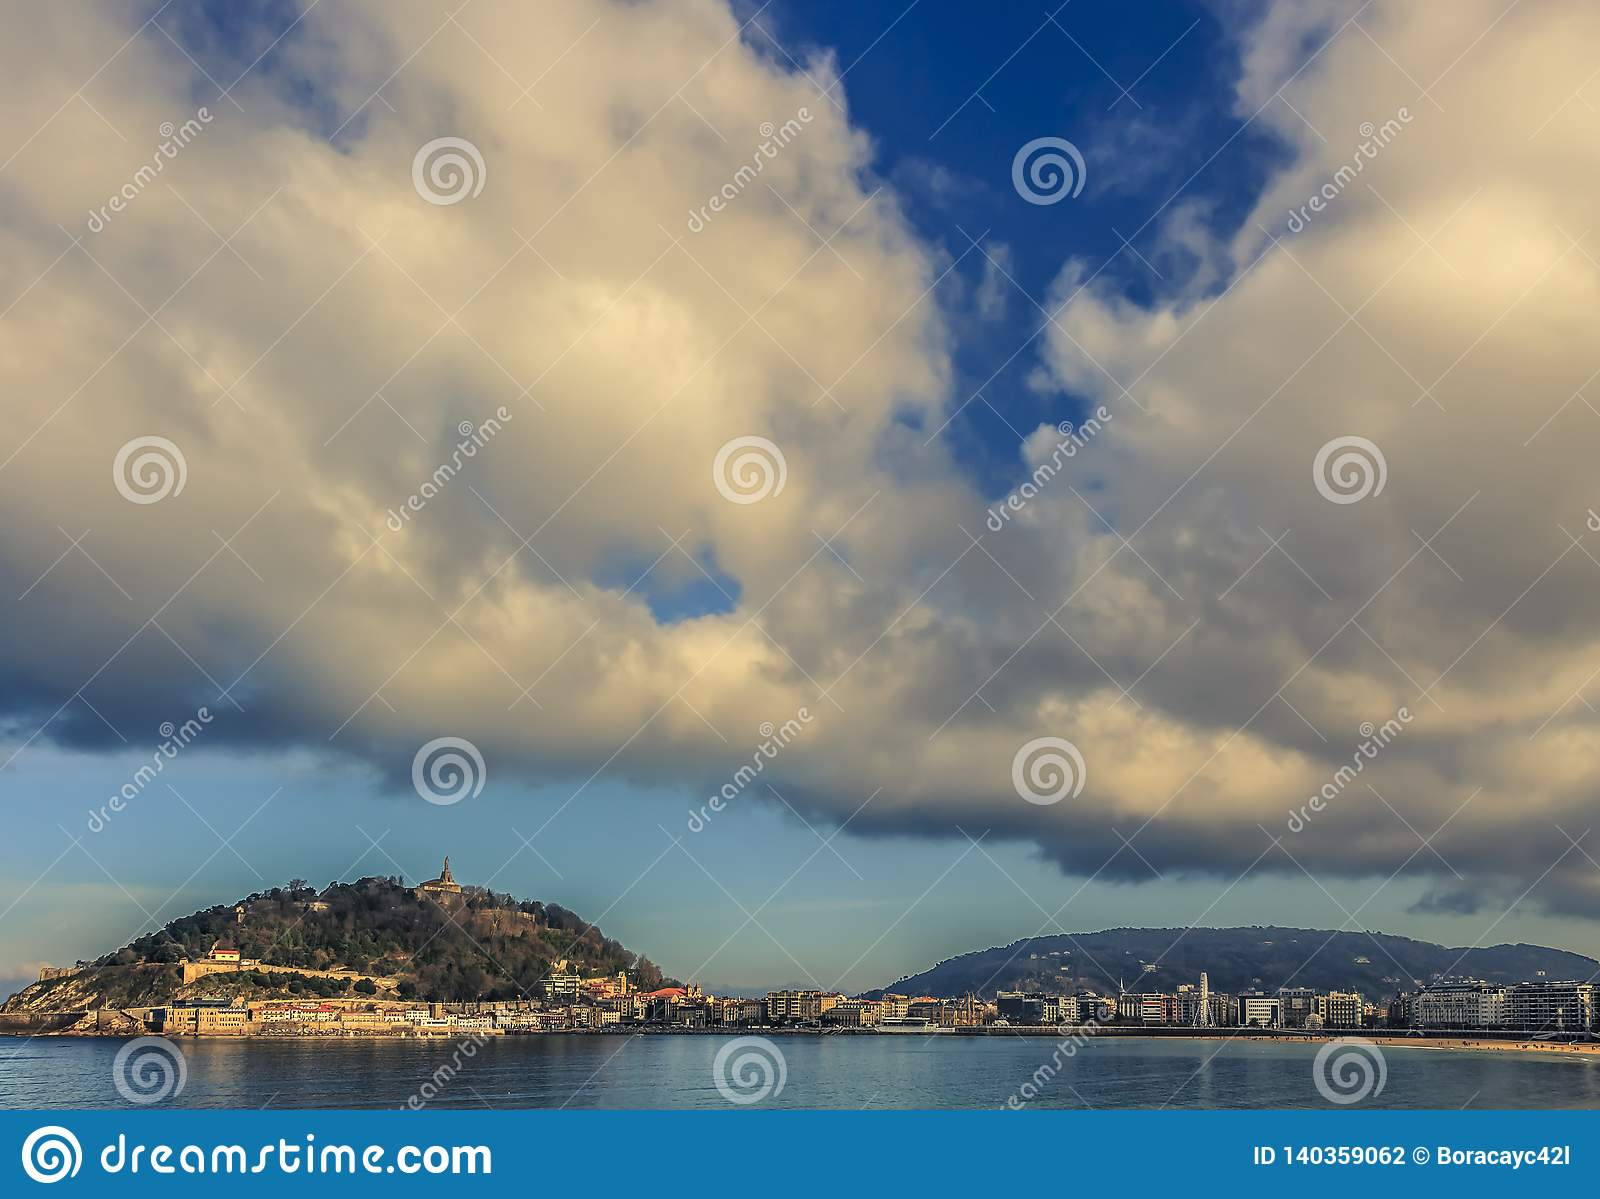 Dramatic clouds above San Sebastian in the late afternoon